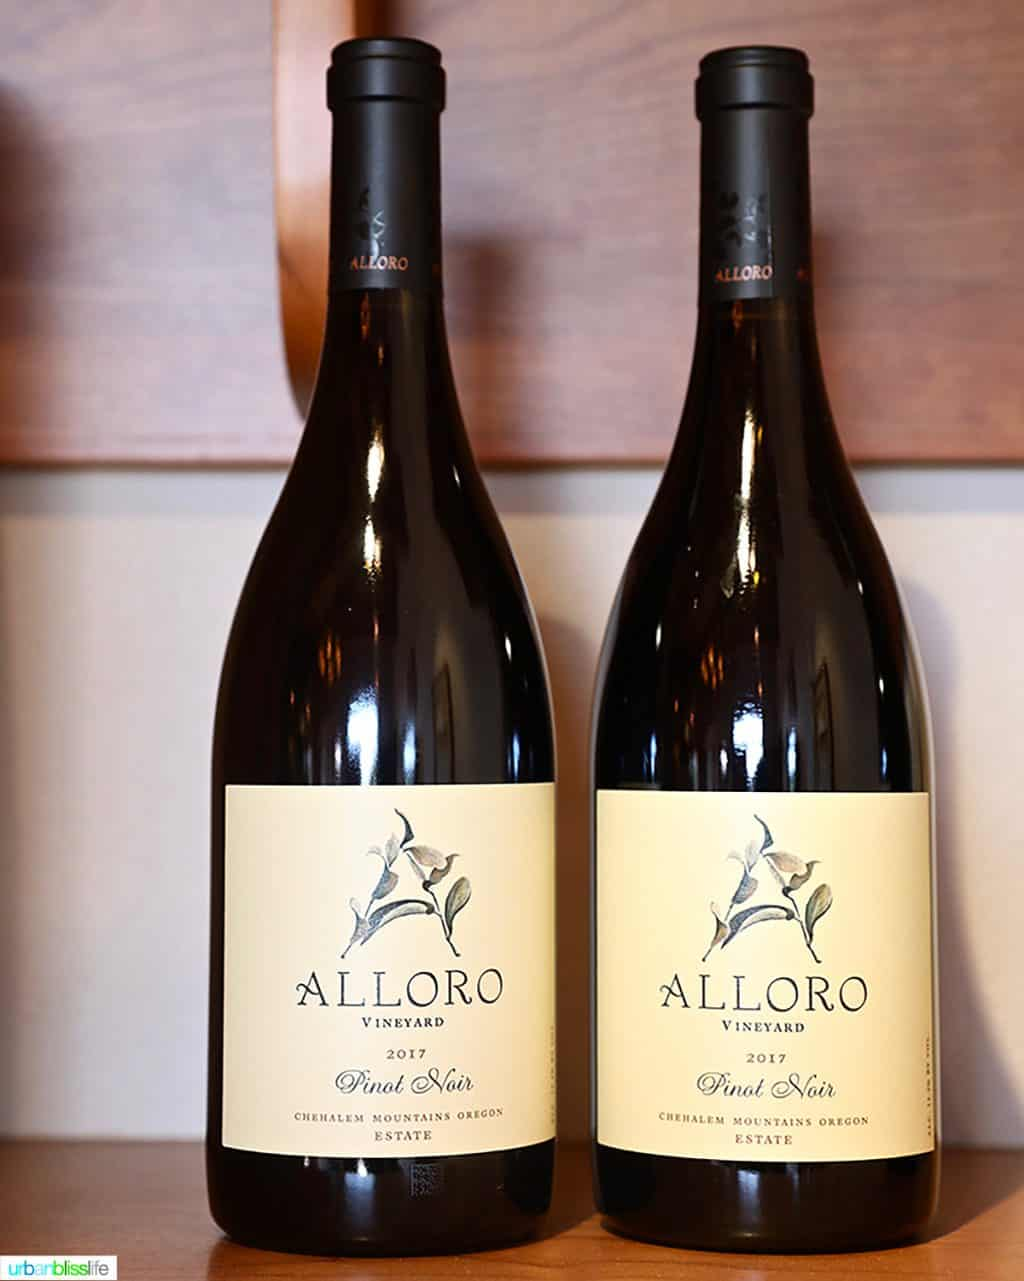 two bottles of Alloro Vineyard Pinot Noir